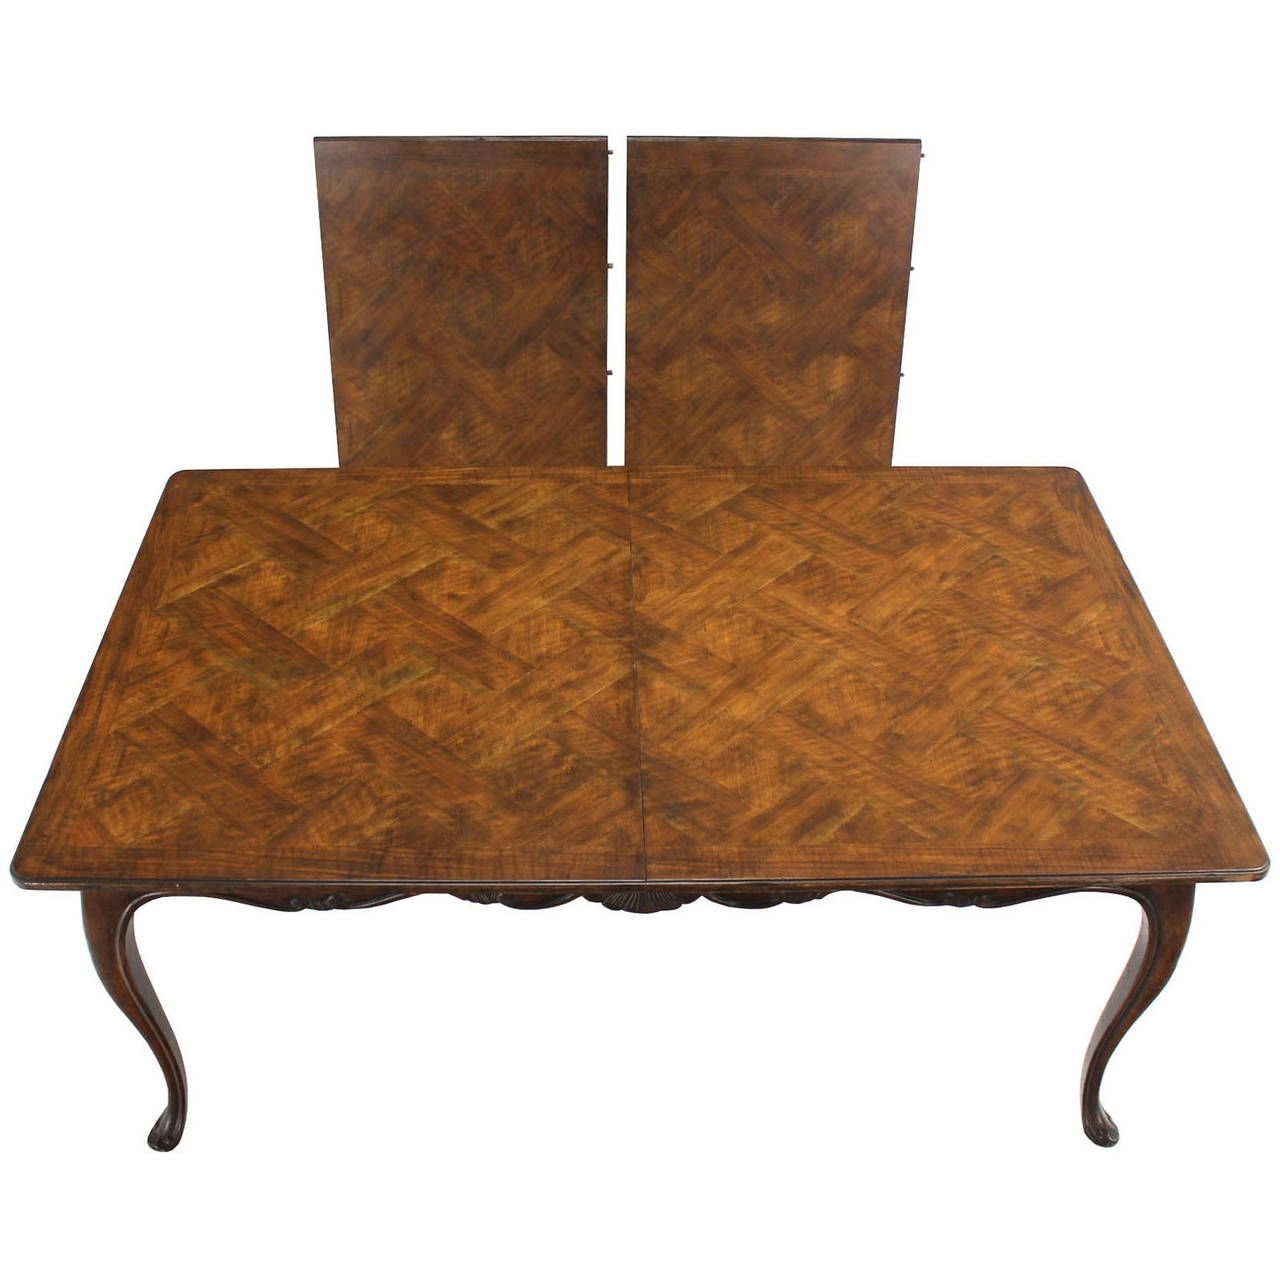 Burwood Walnut Dining Tableheritage W/ One Extension Leaf With Regard To Most Popular Parquet Dining Tables (Image 5 of 20)